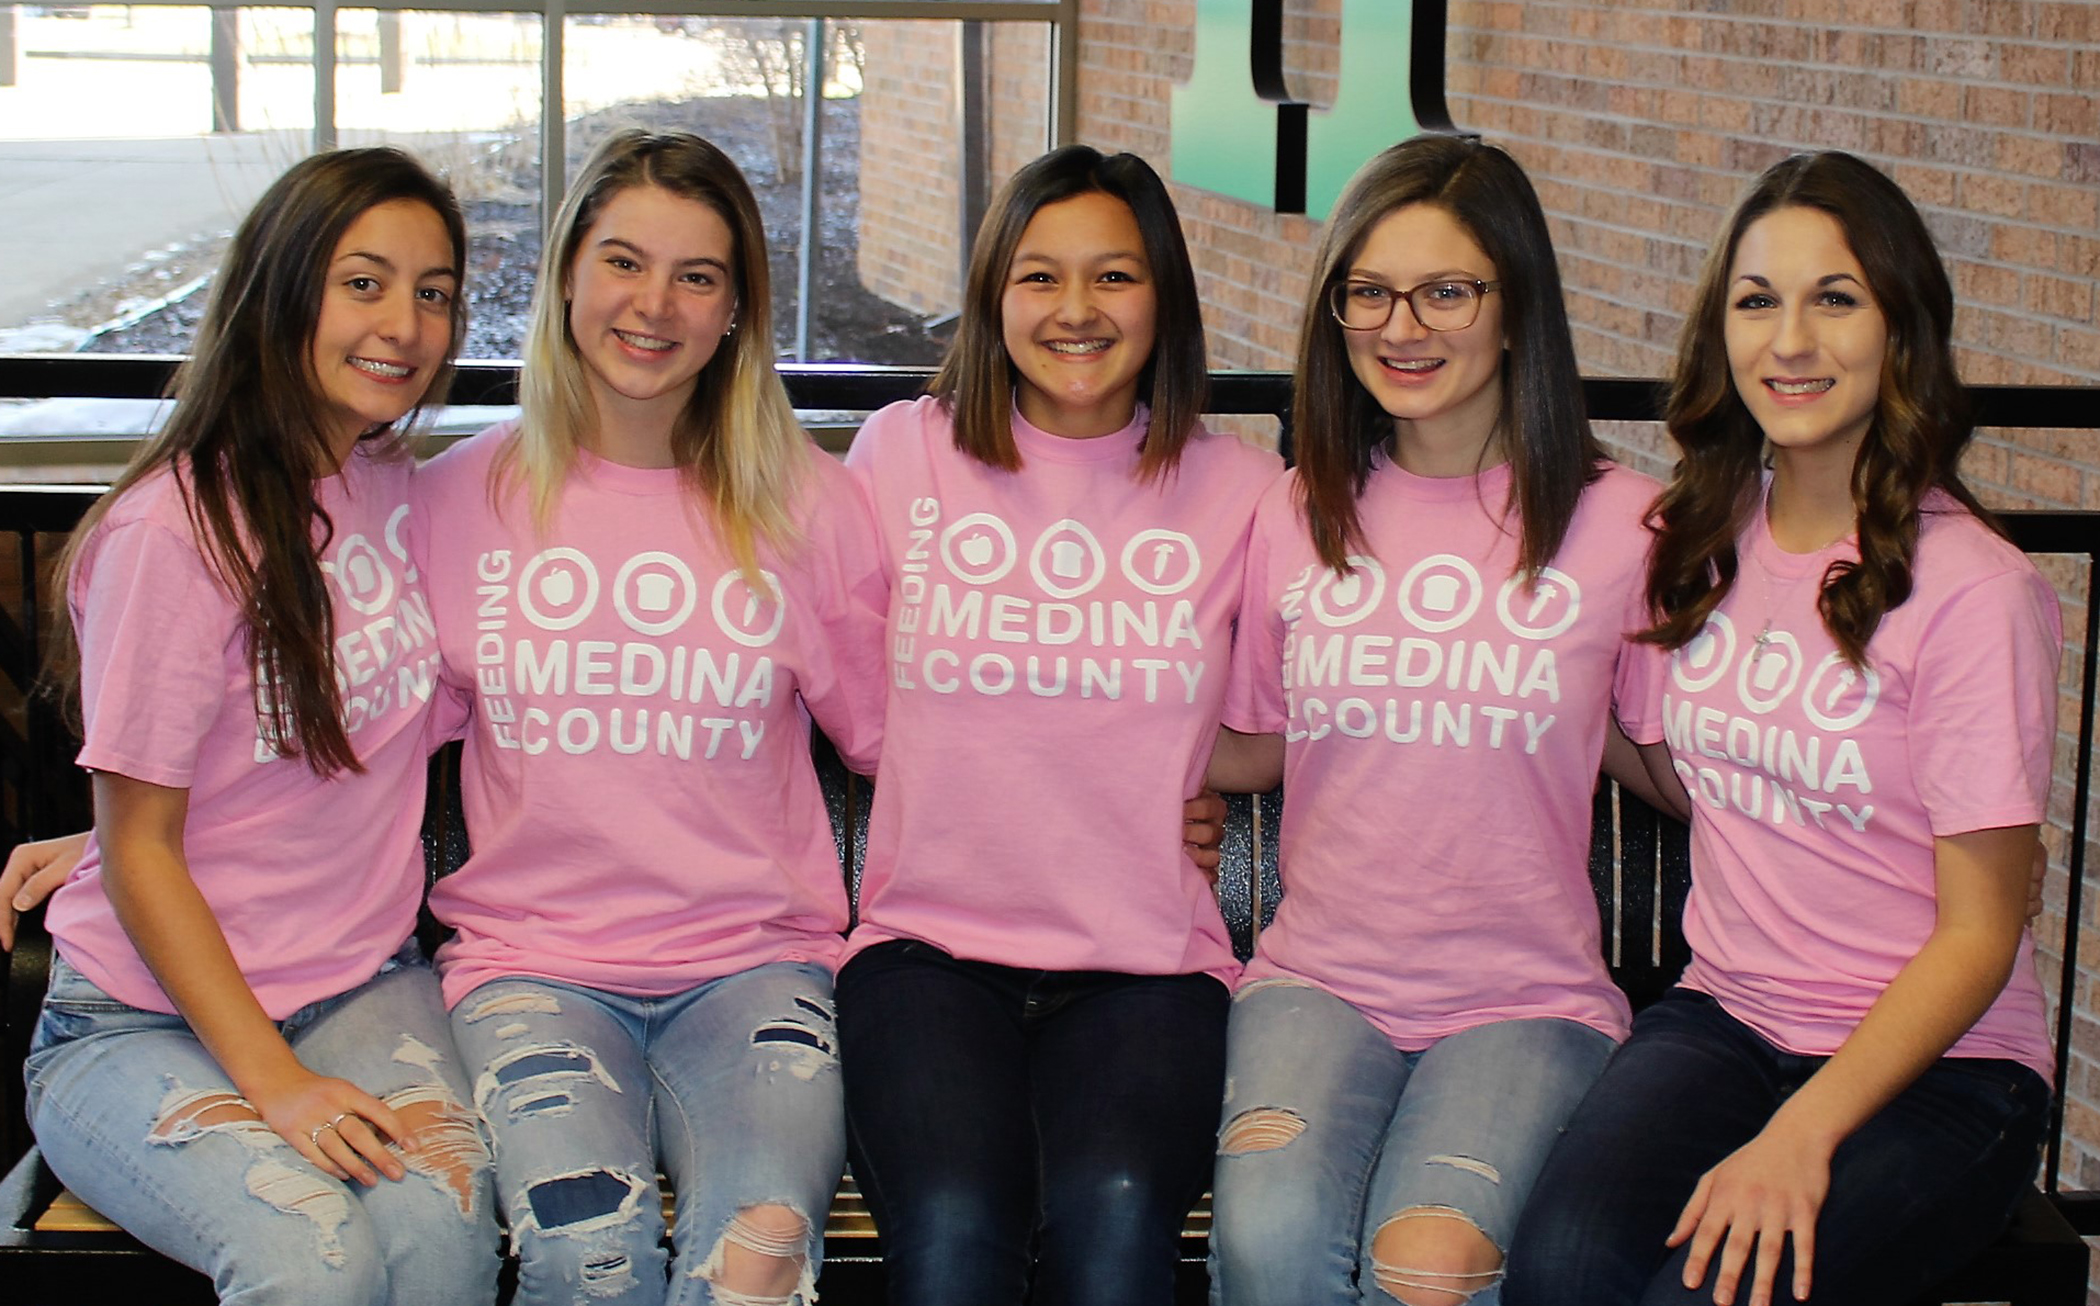 Pictured from left are Annamarie DiGiacobbe, Kaila Oberhaus, Bethany Yu, Brianna Kean and Olivia Severyn.